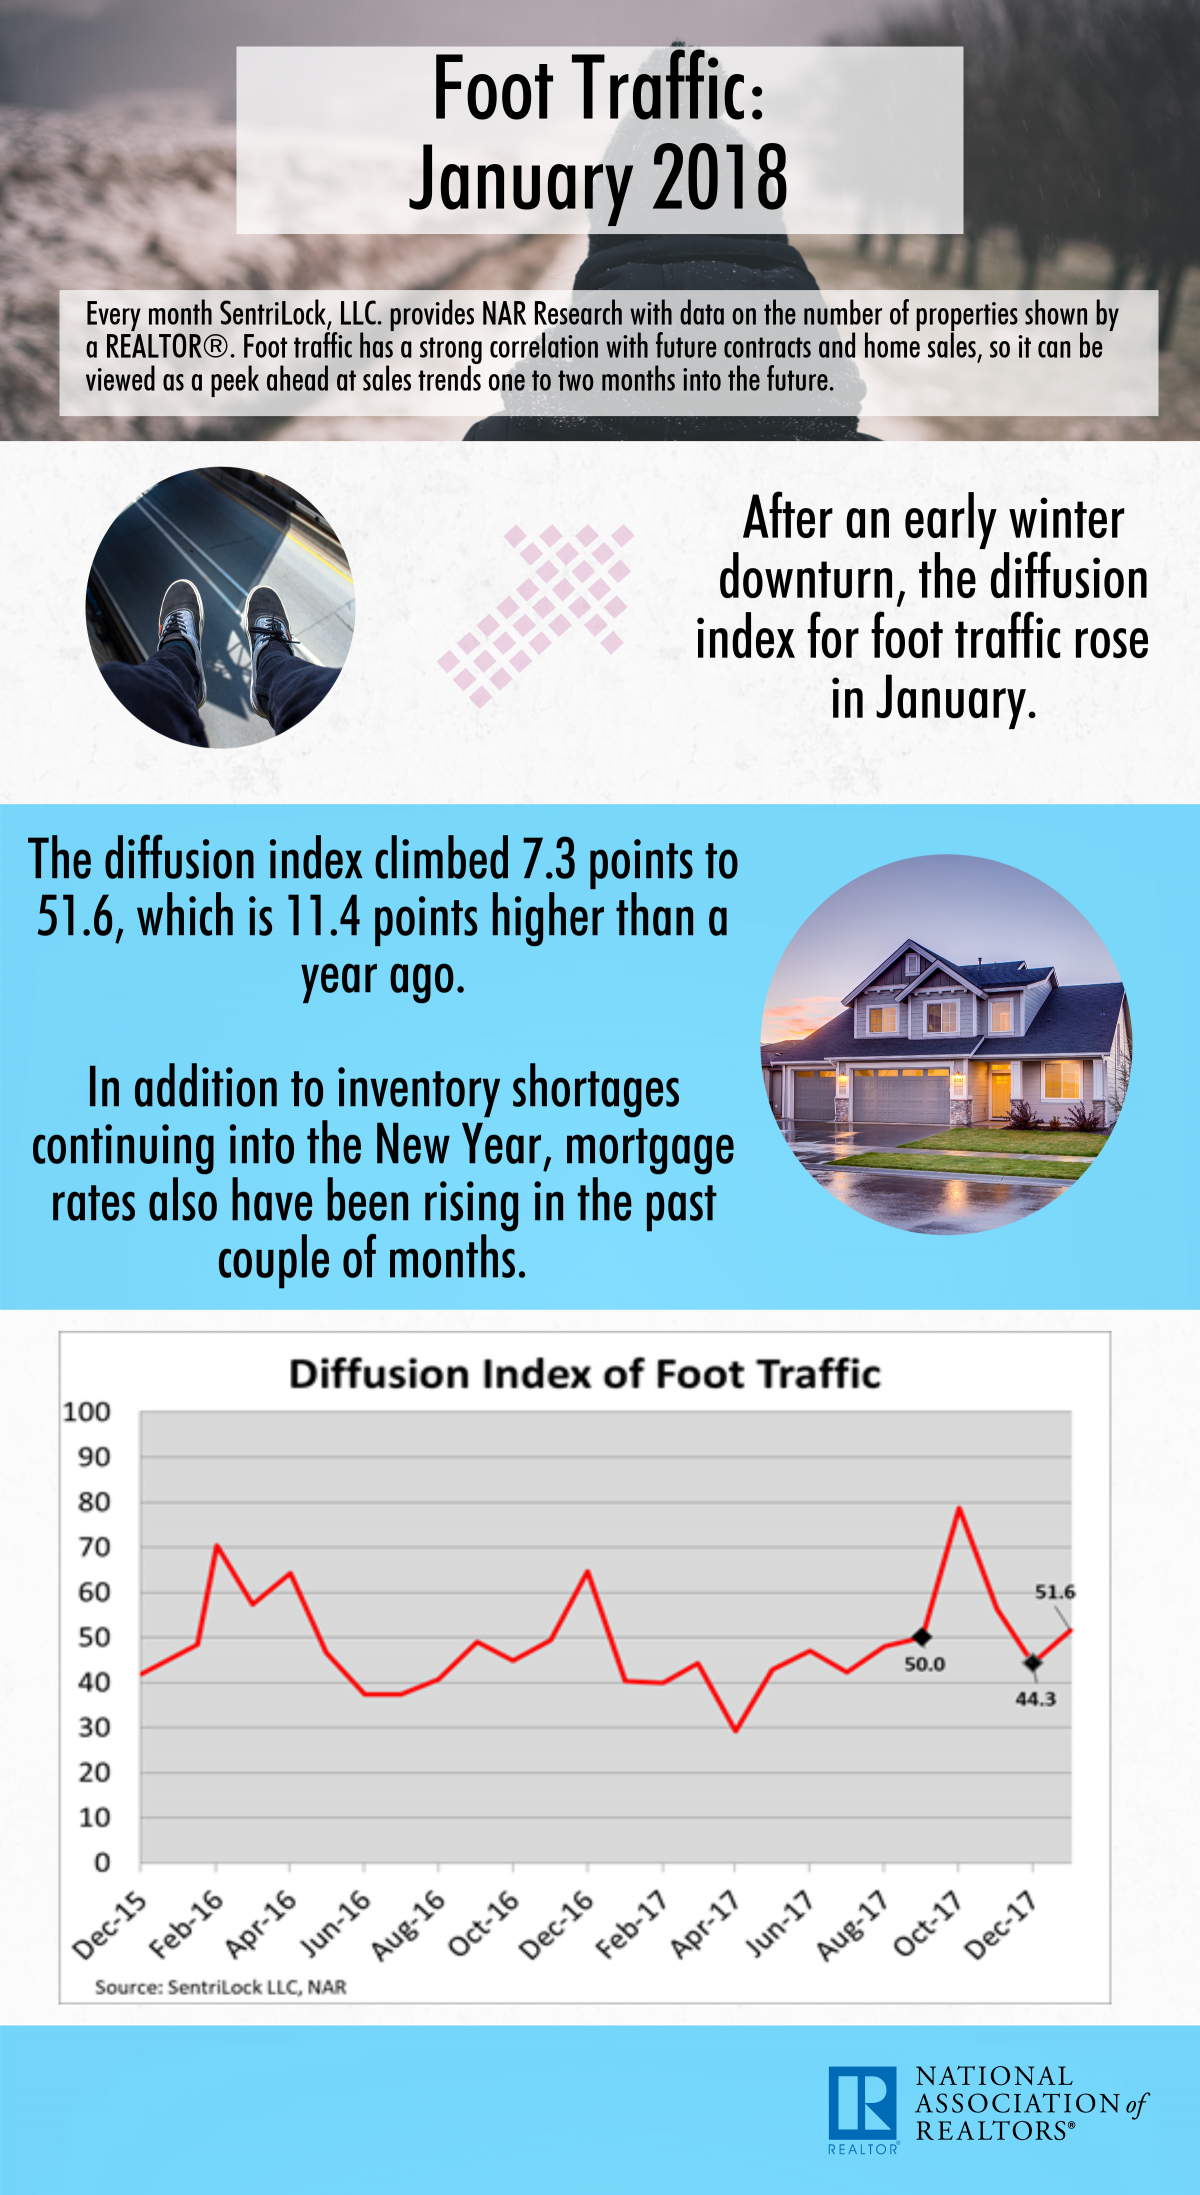 January 2018 Foot Traffic infographic